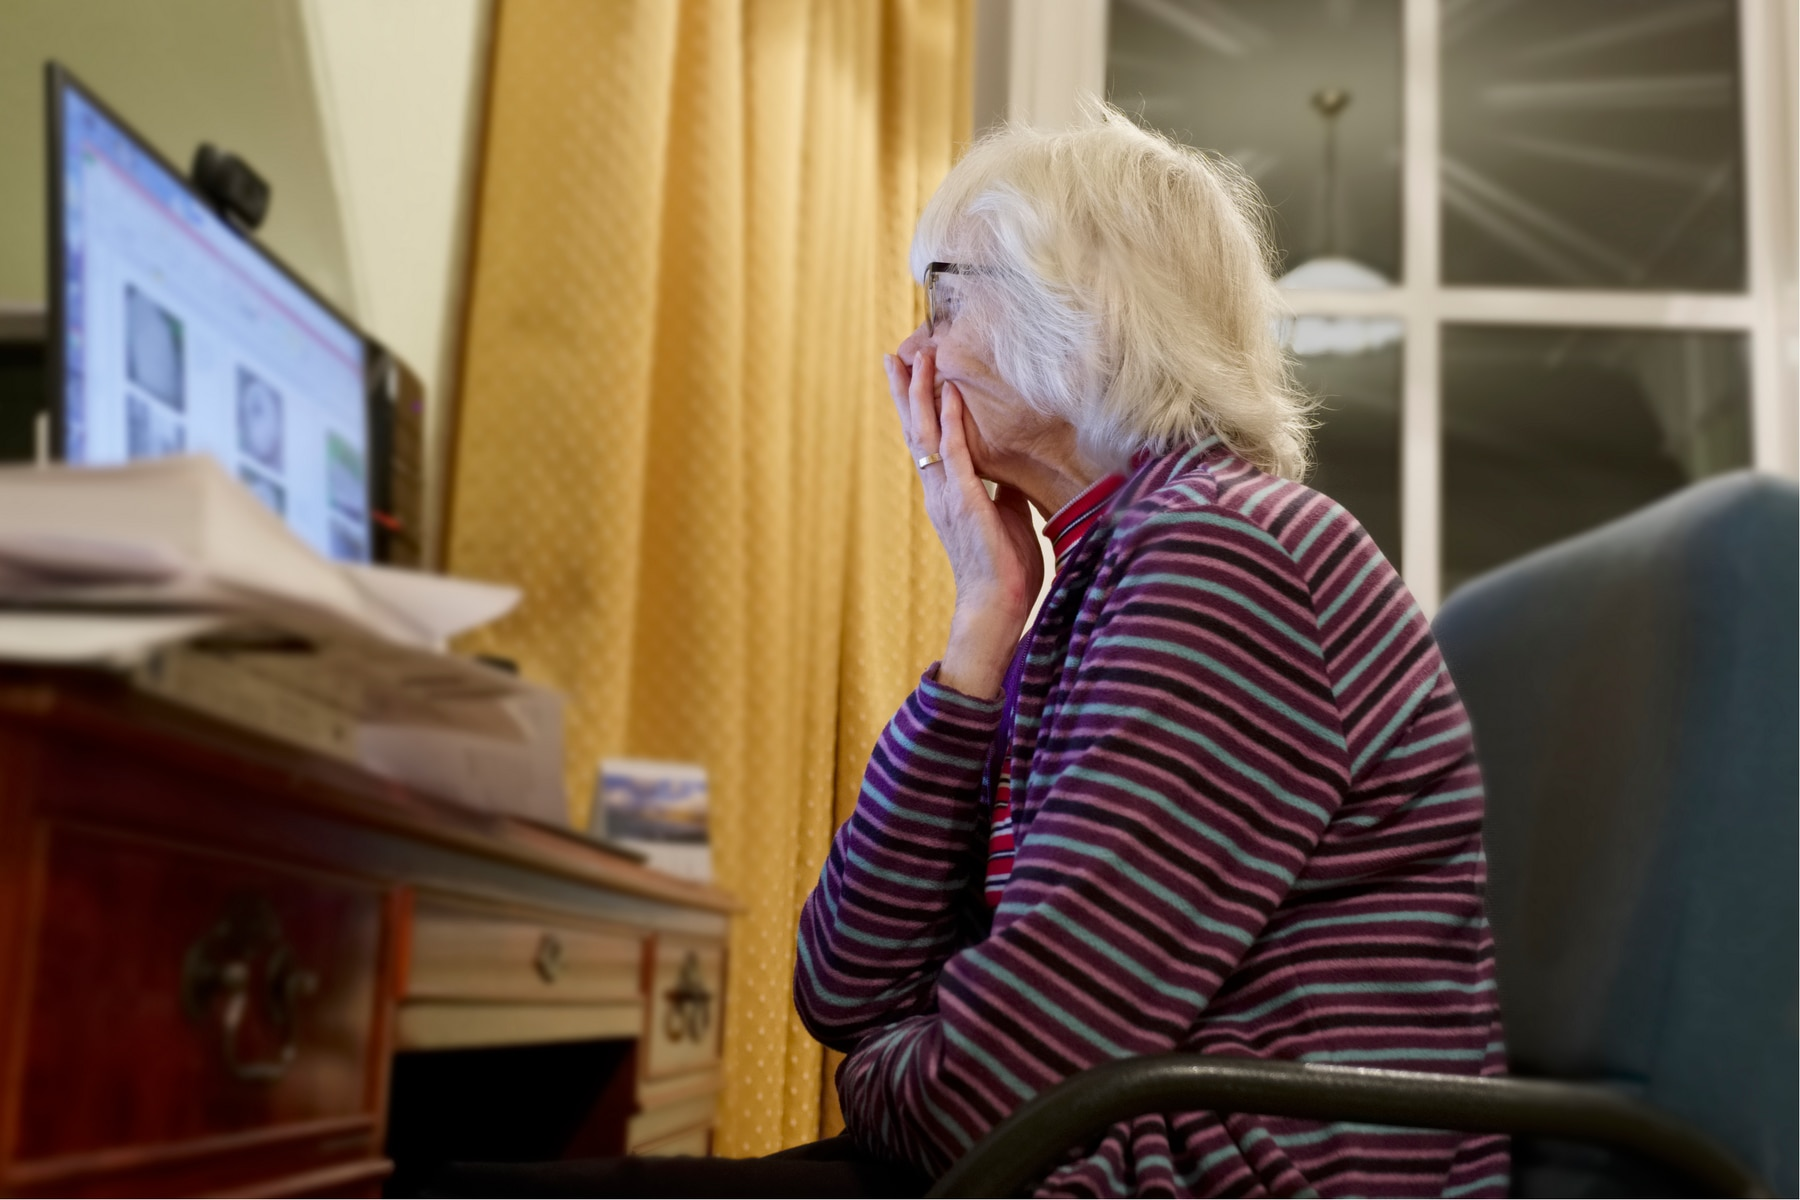 Old elderly senior person learning computer